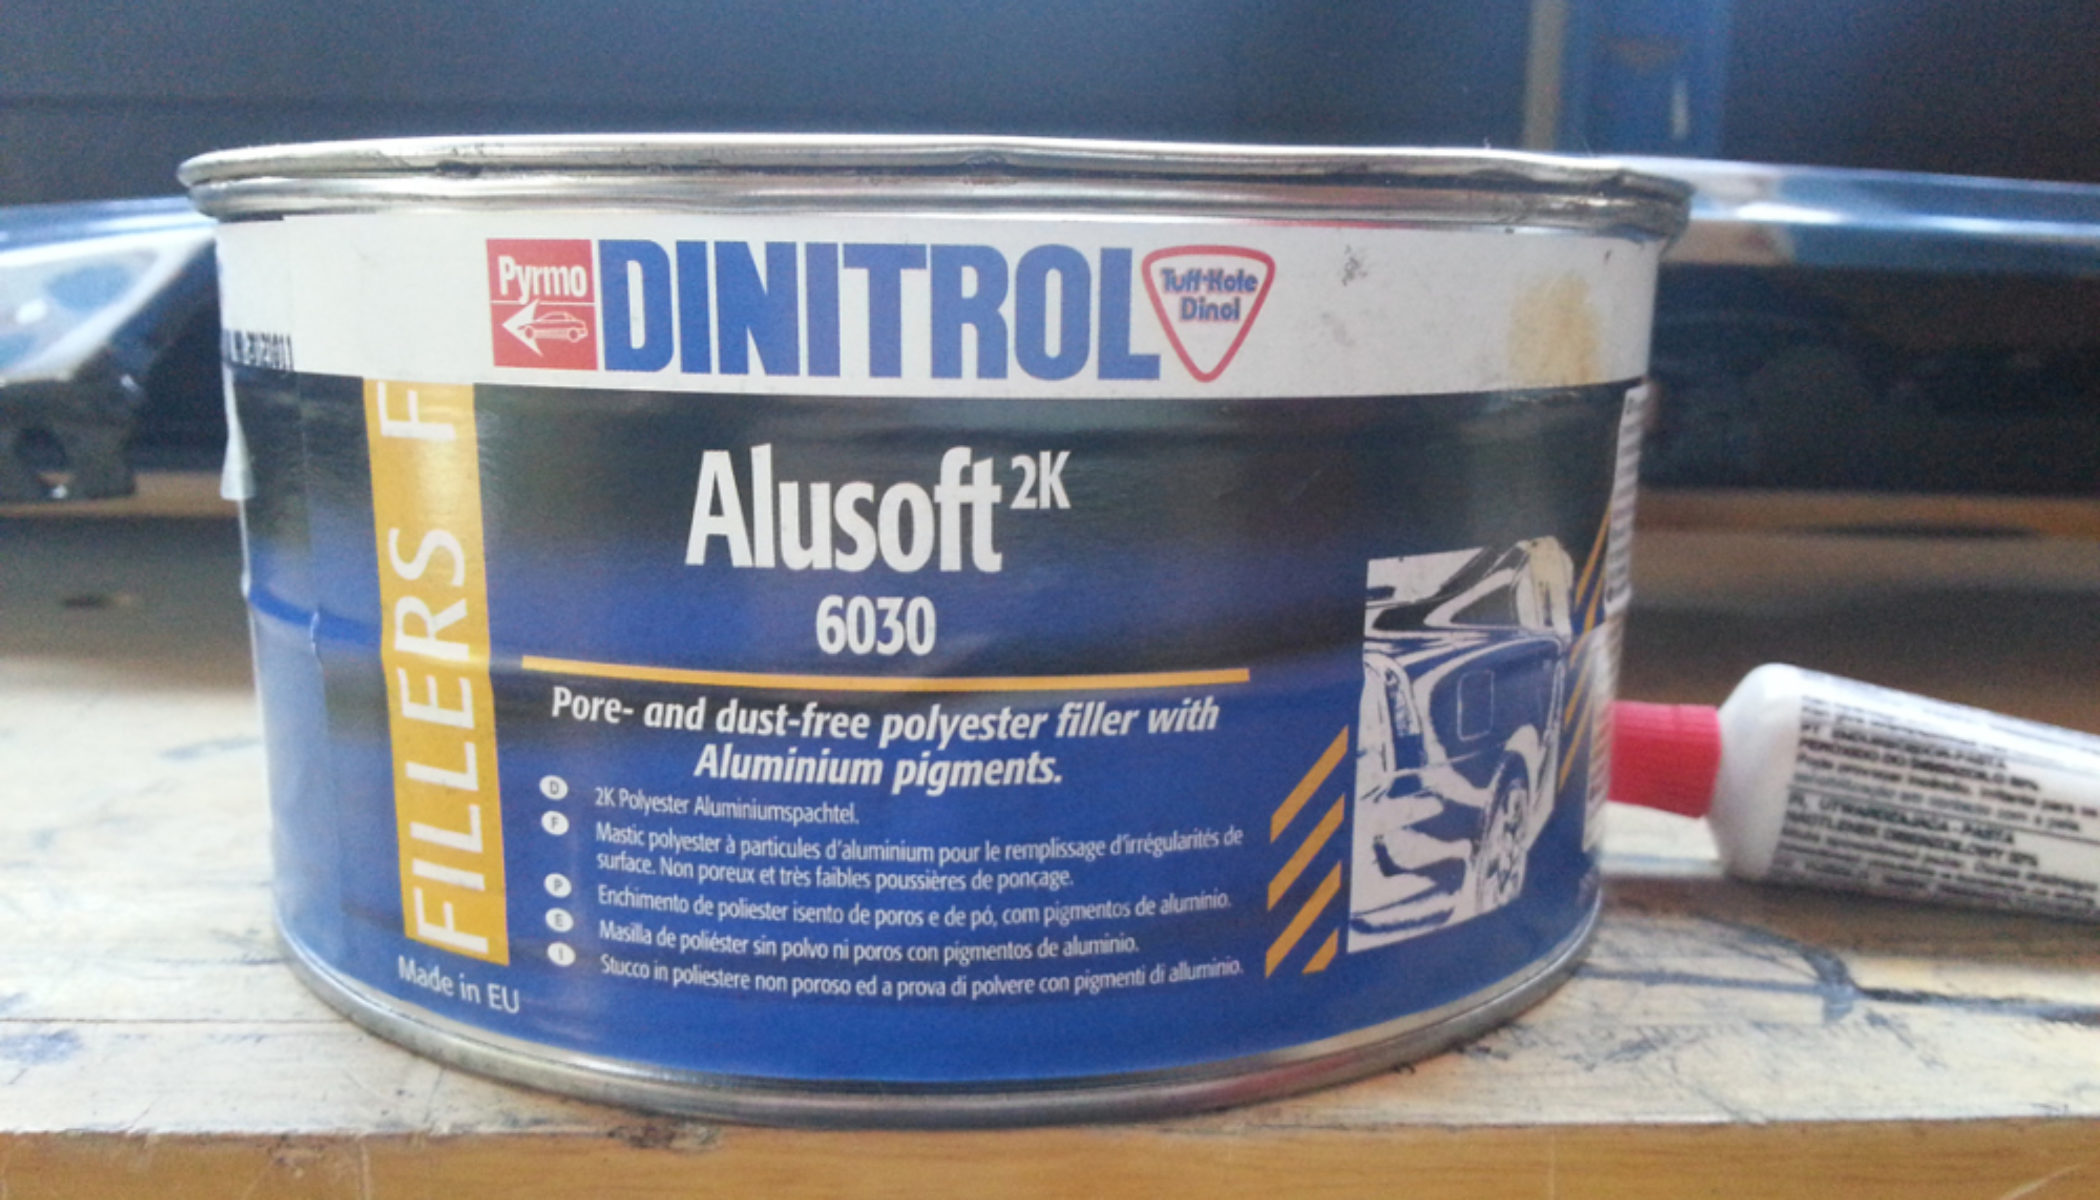 REVIEW: Dinitrol 6030 Metalised Body Filler - The Frost Hub